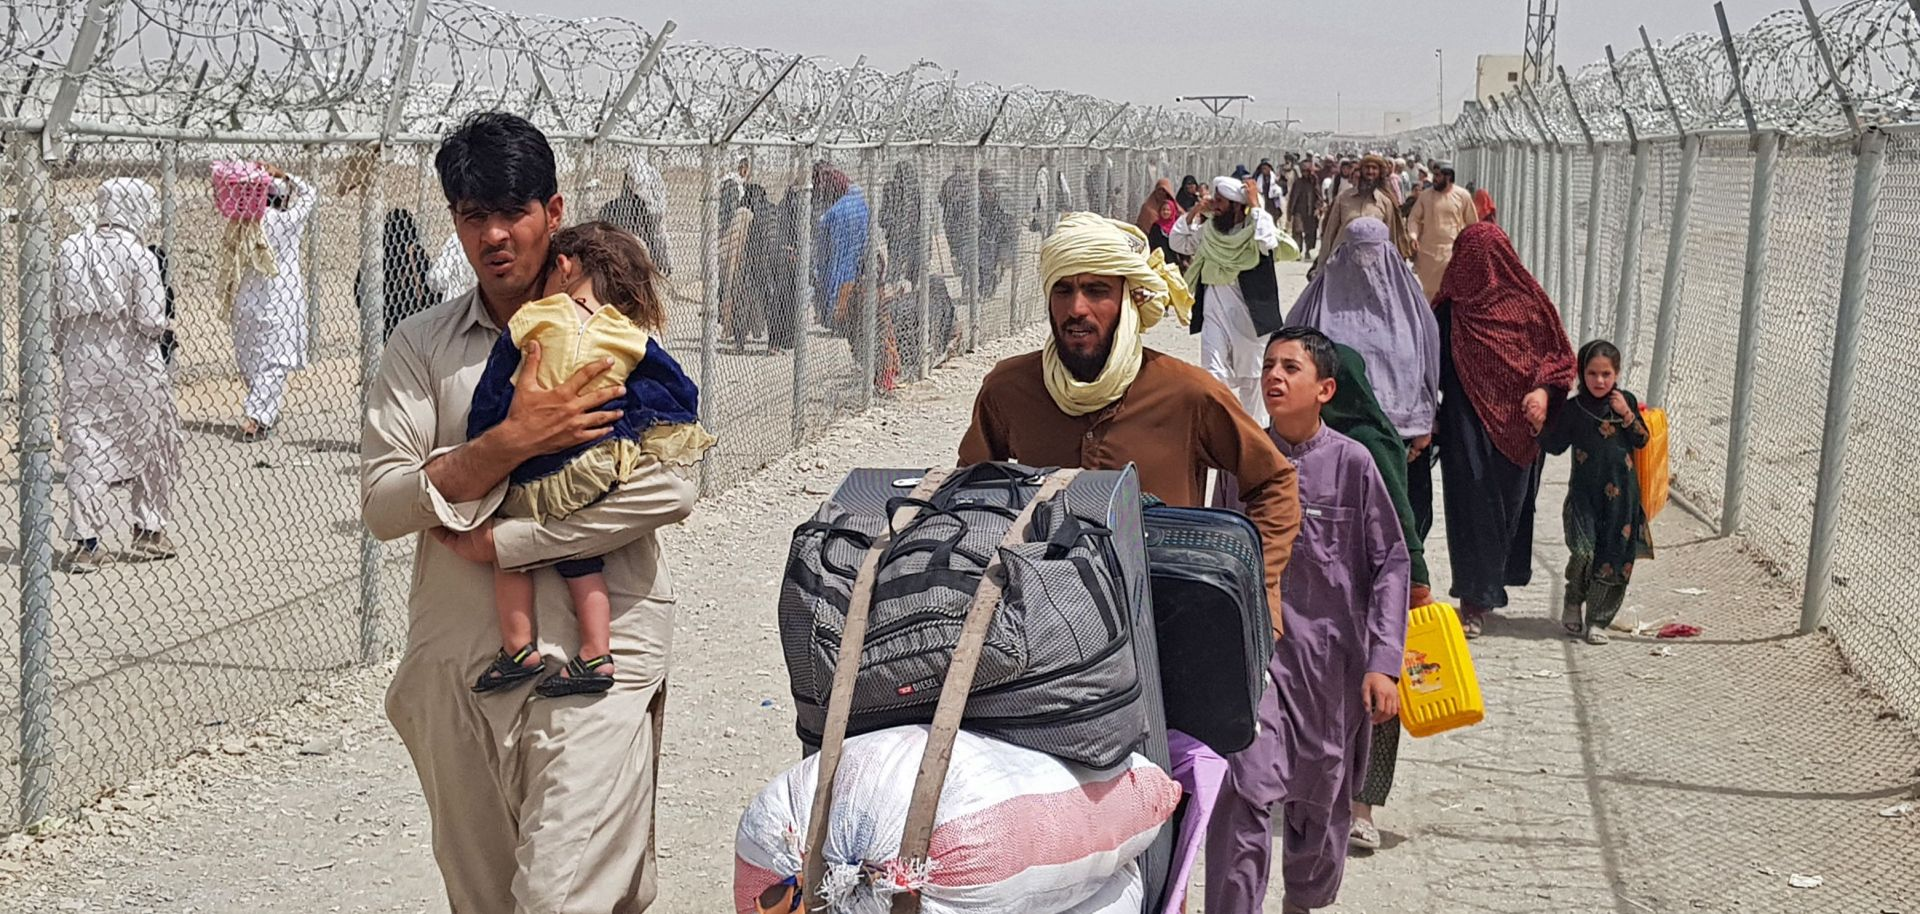 Stranded Afghan nationals arrive to return back to Afghanistan at the Pakistan-Afghanistan border crossing point in Chaman on Aug. 16, 2021.